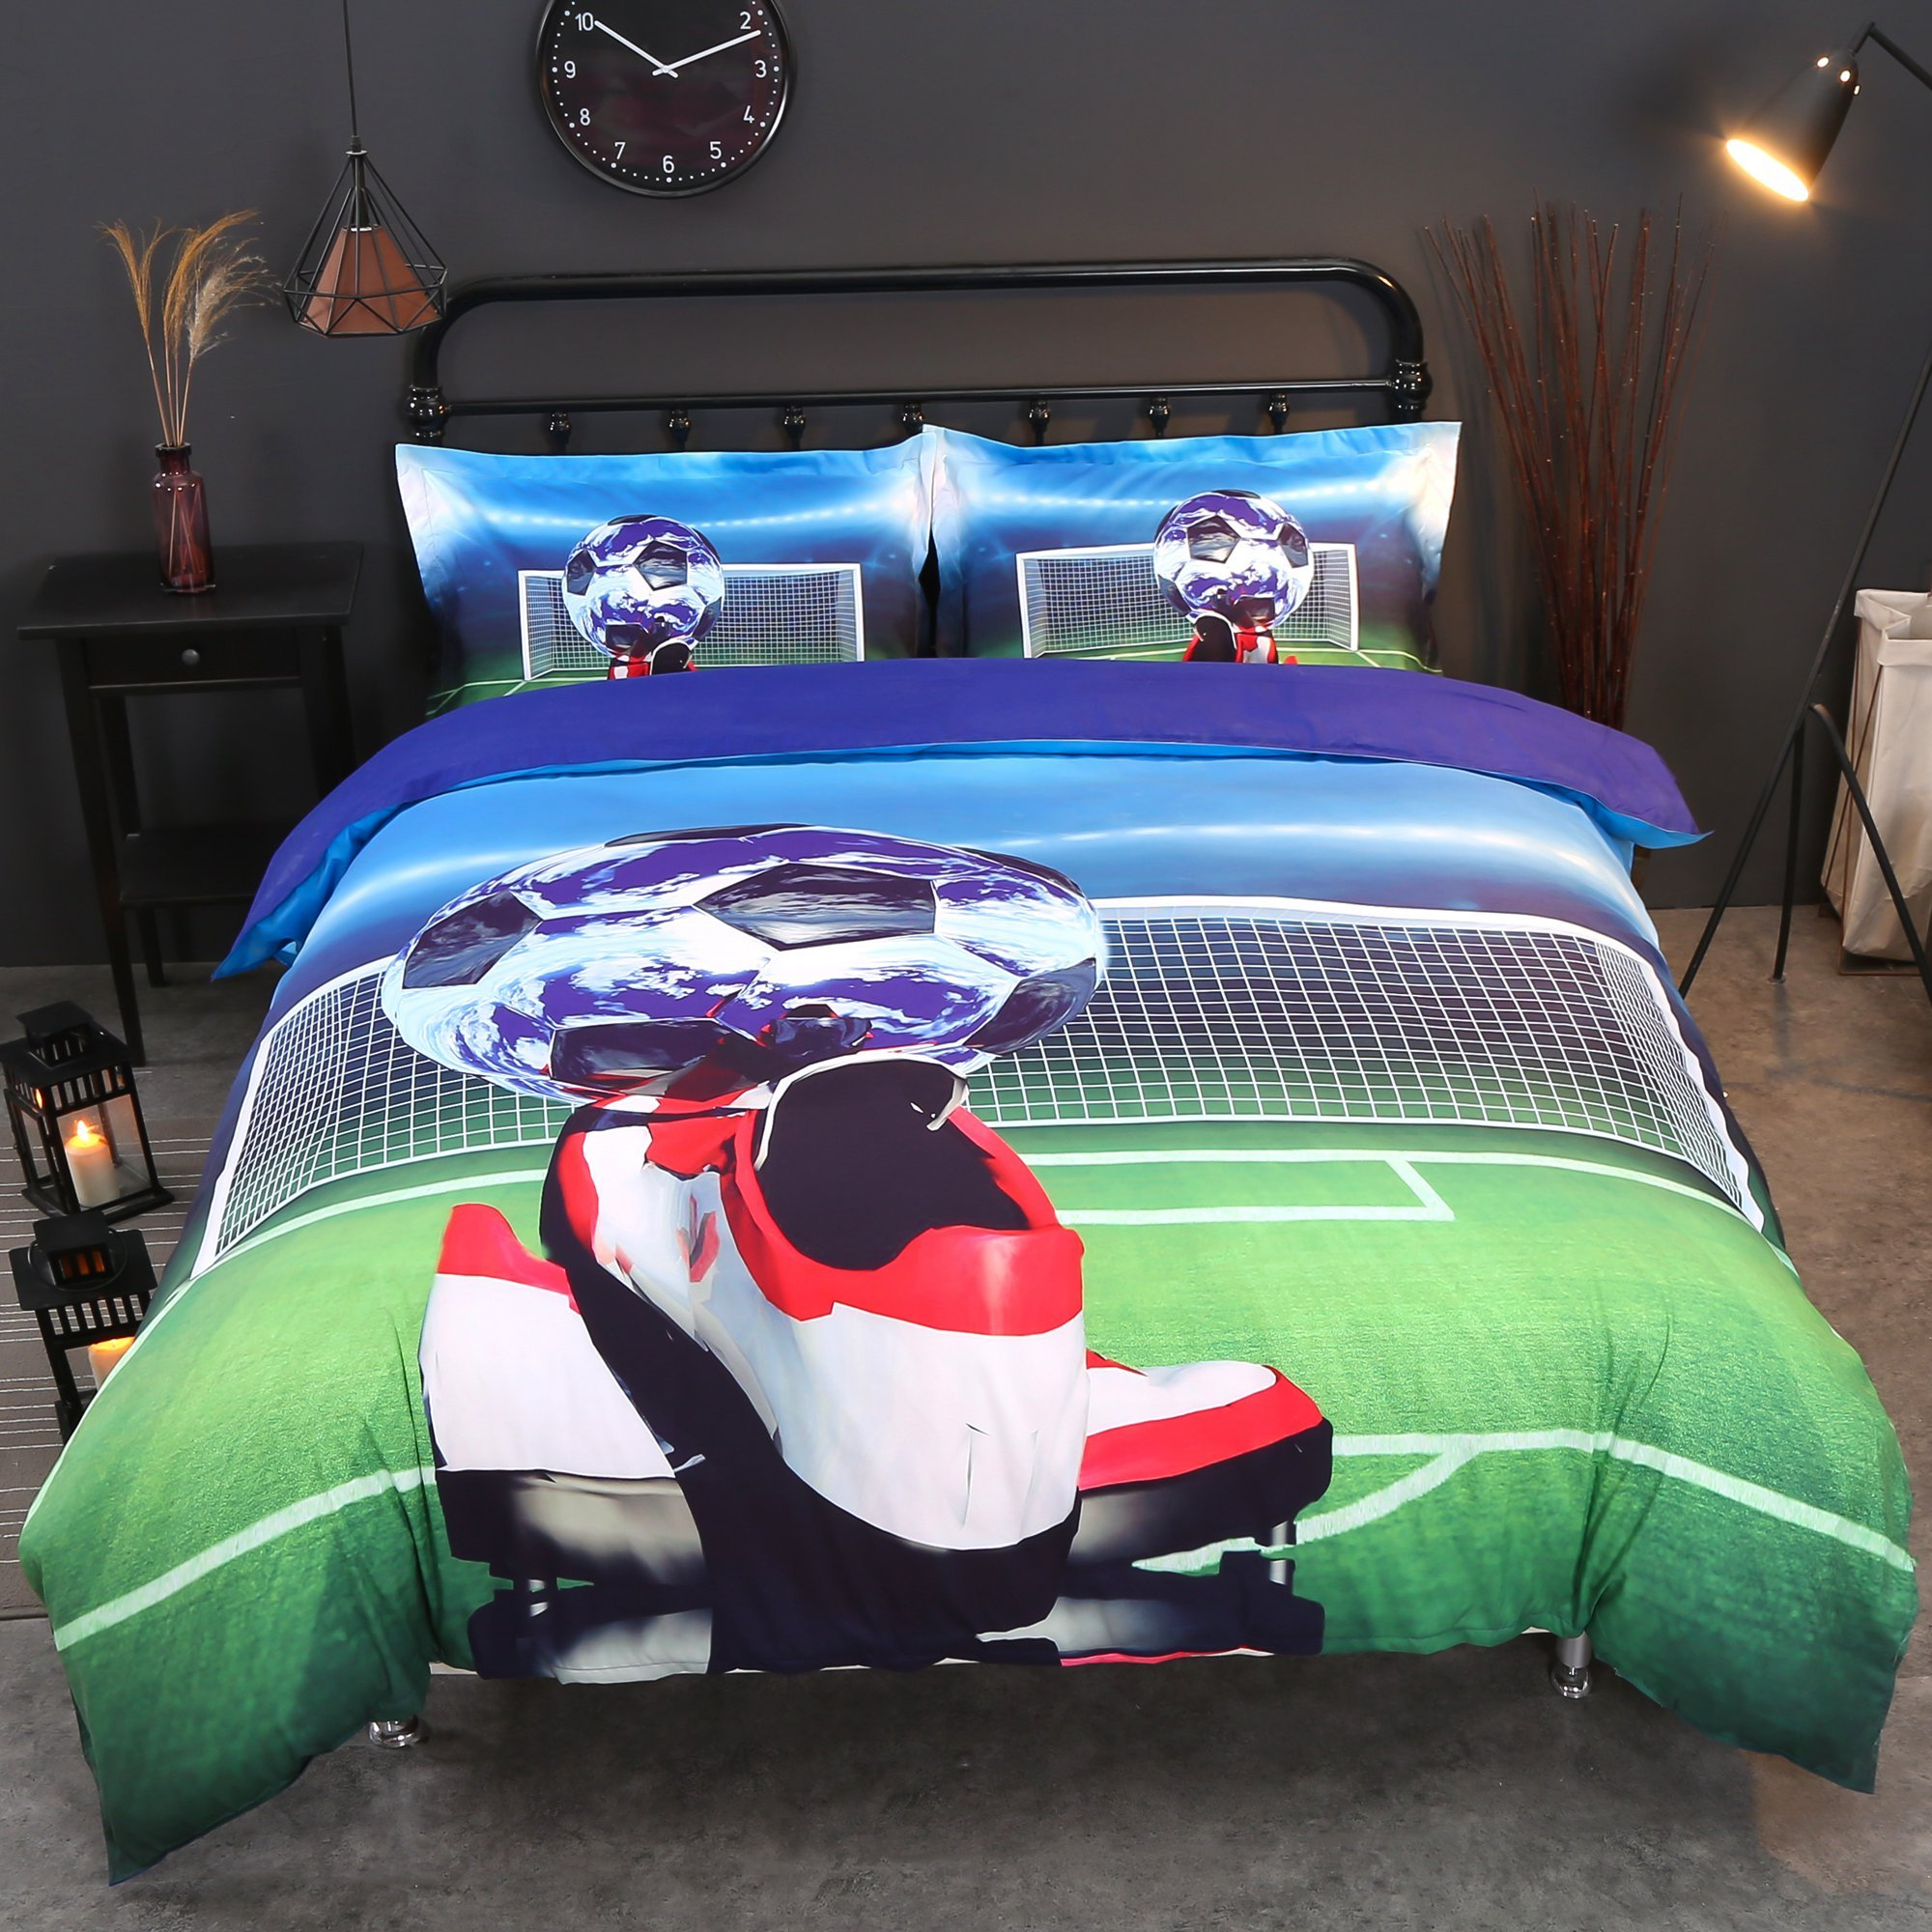 Alicemall 3D Football Bedding Unique Soccer Ball and Shoes Printed Cotton 4-Piece Duvet Cover Set, Full Size Boys College Bedding Set (Full, Soccer&Shoes)